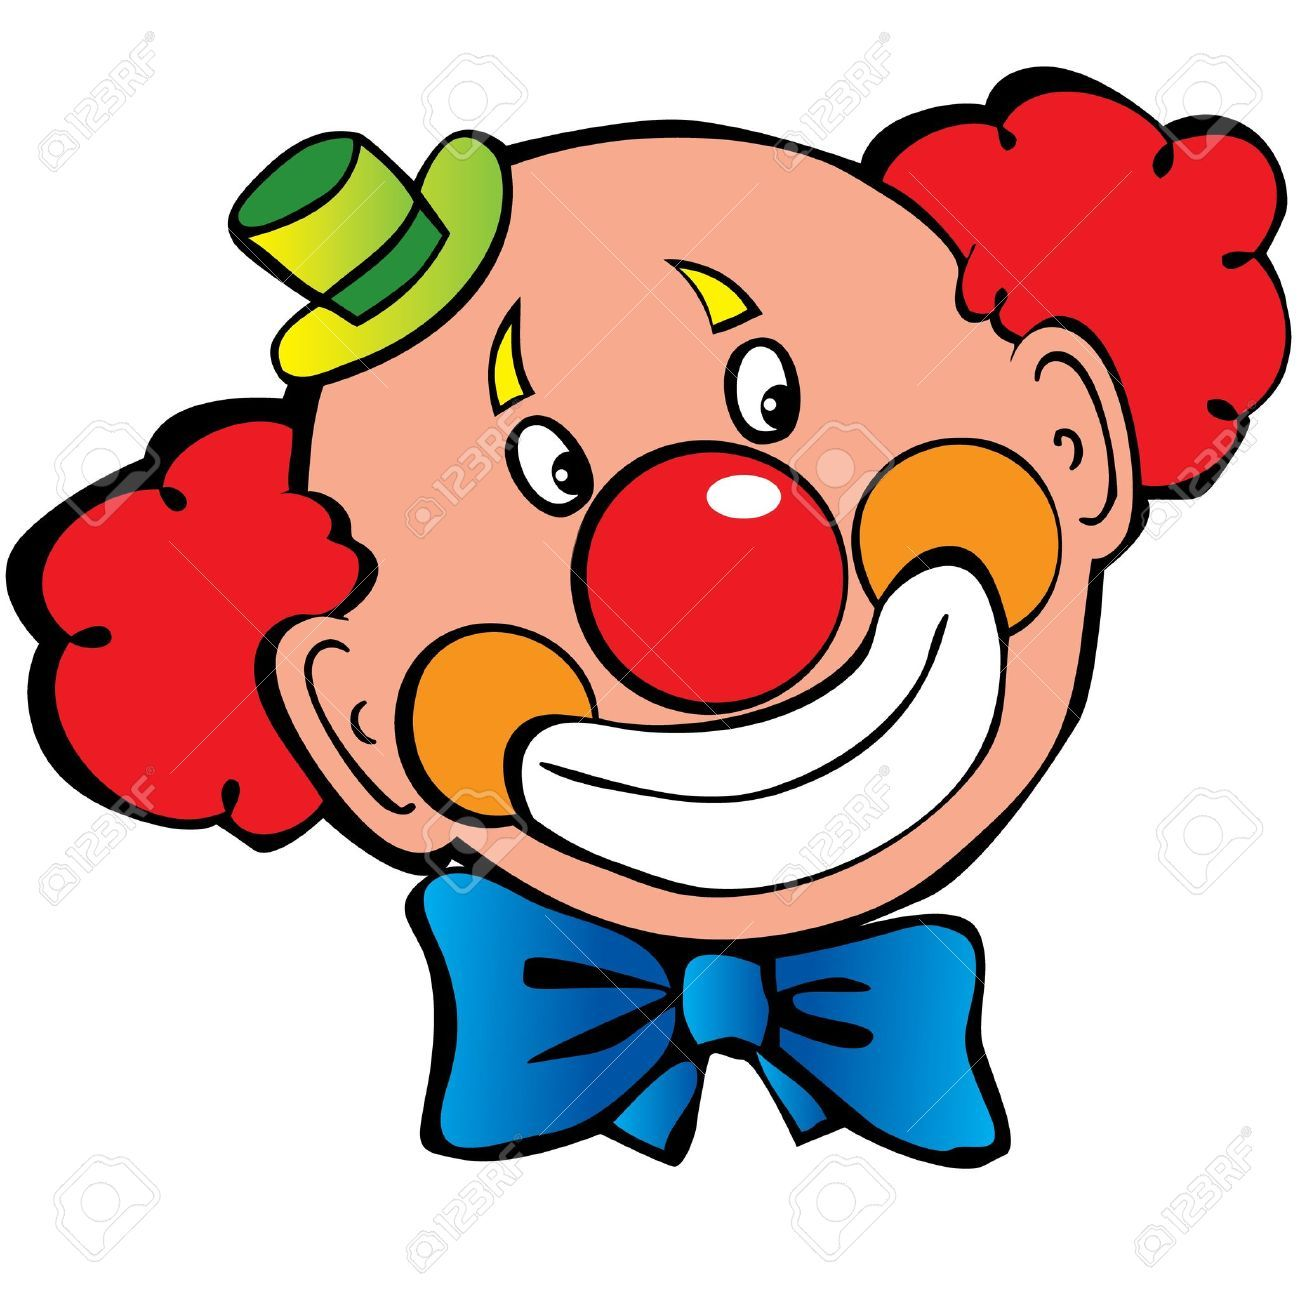 Image of clown face clipart 9 free clown clipart 1 page of.